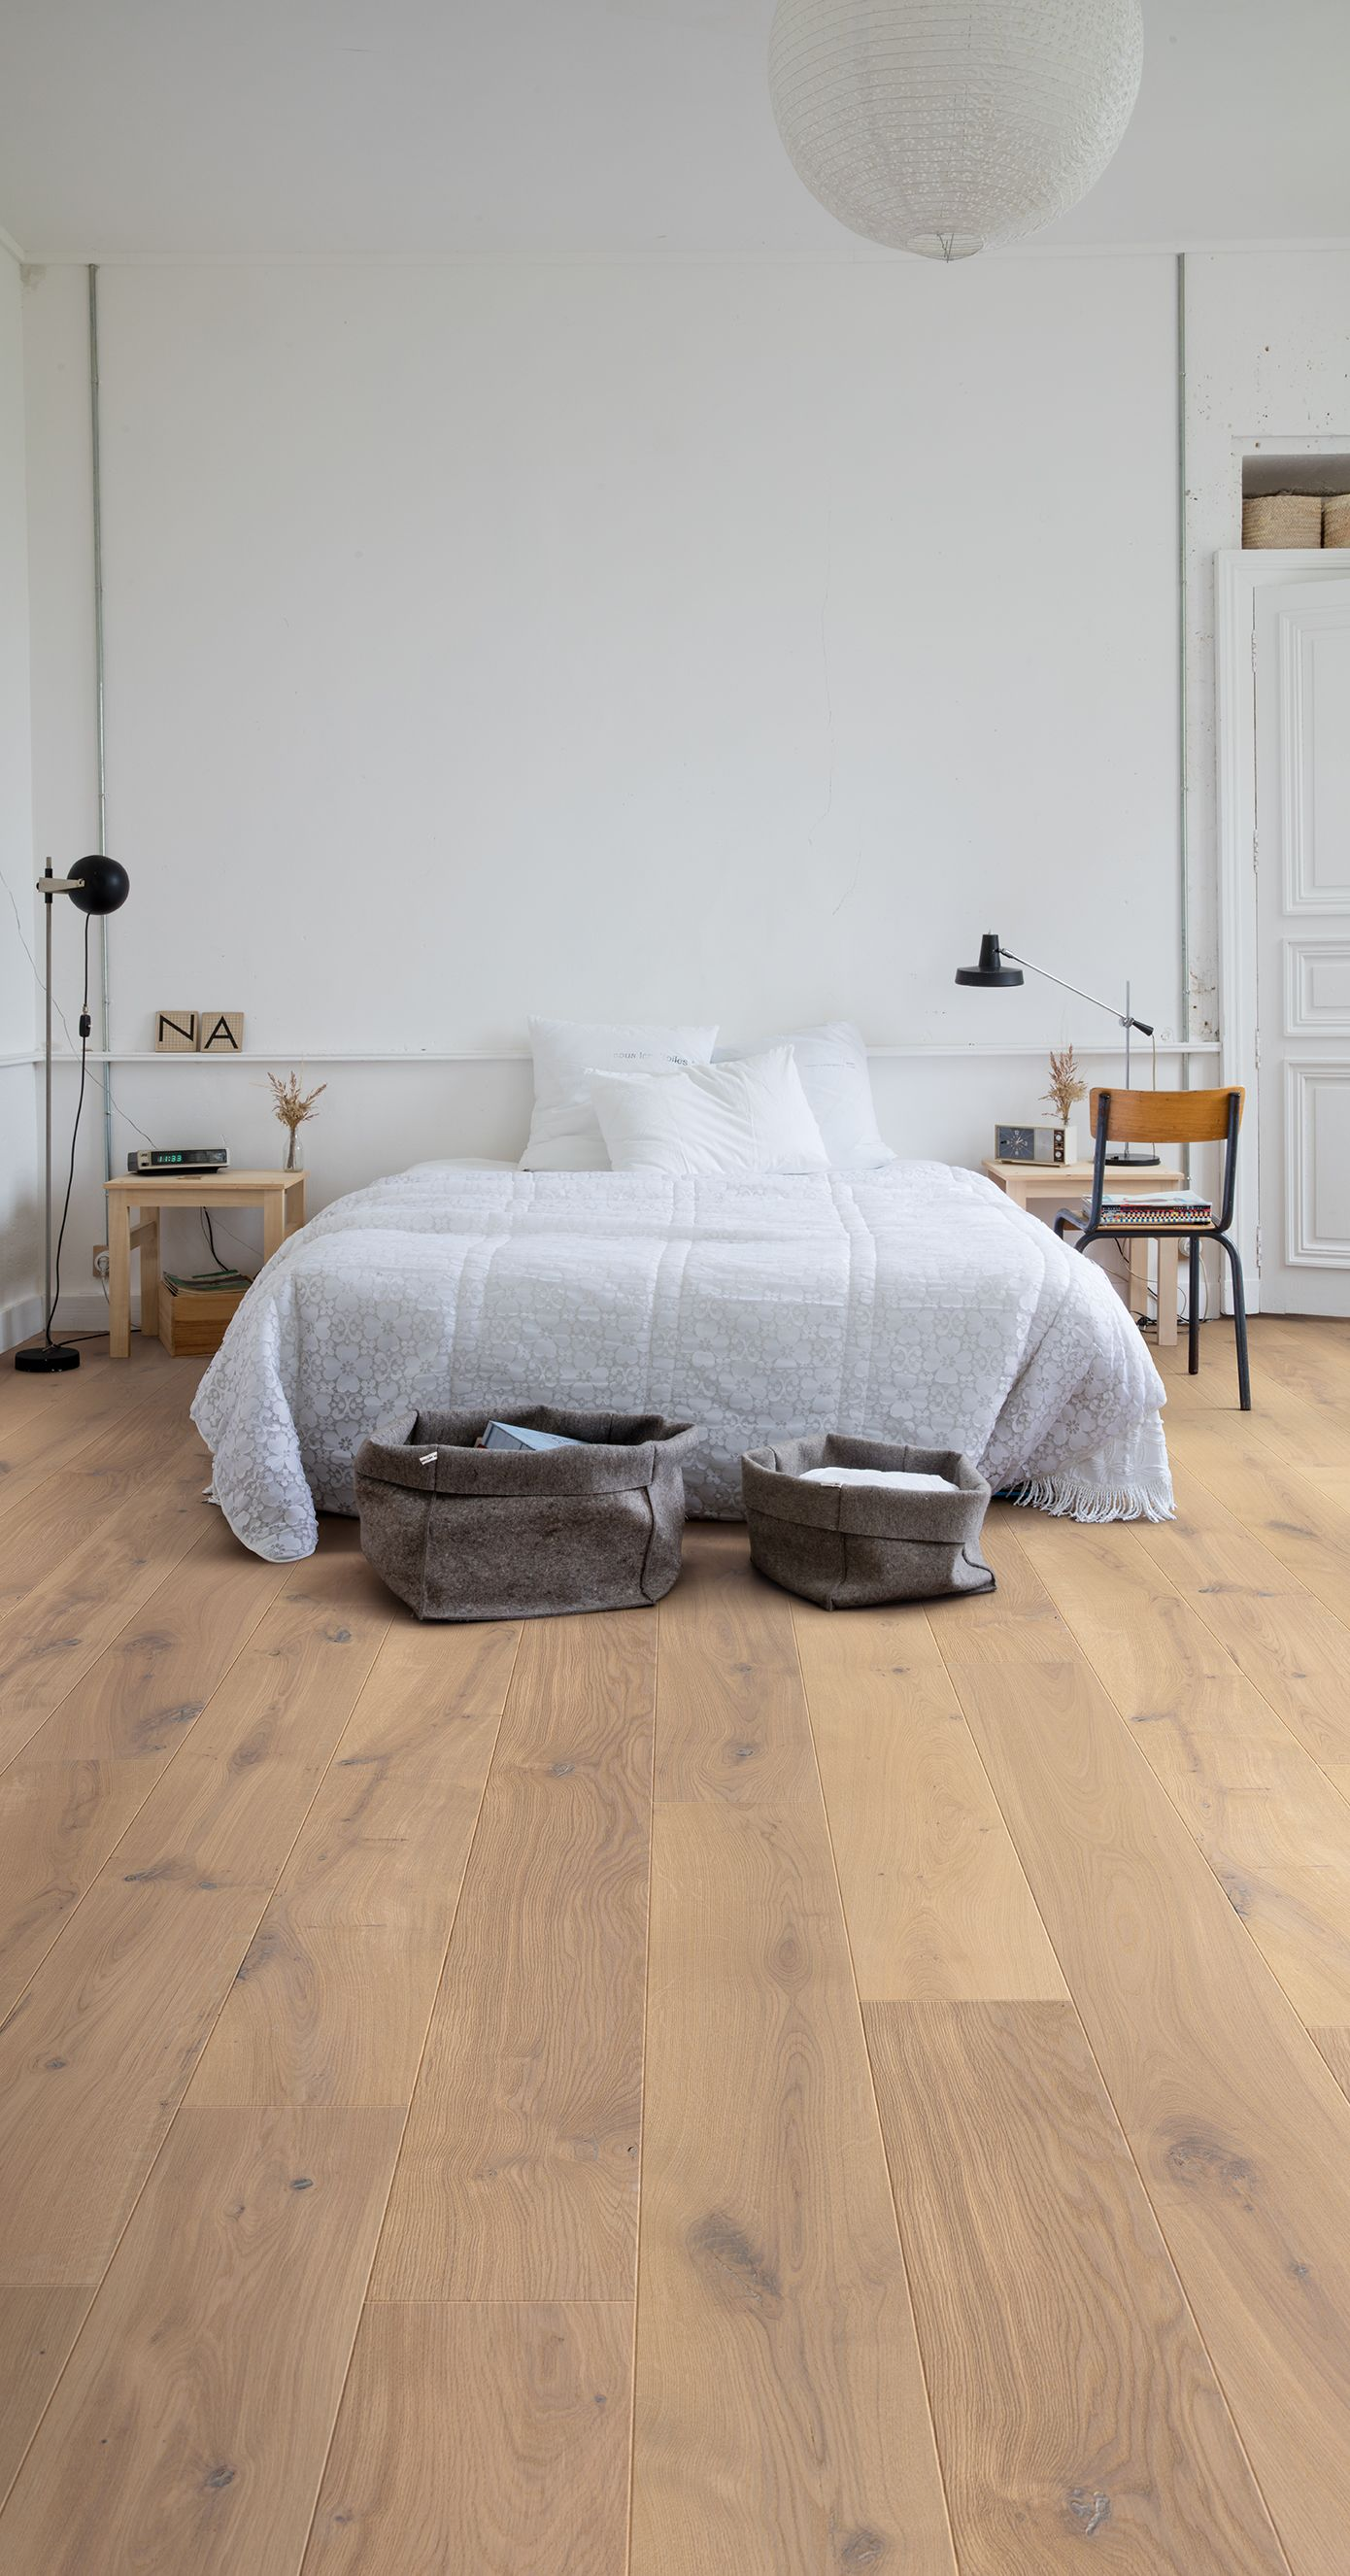 Picking The Right Bedroom Floor Doesn T Hen Overnight Here S All You Need To Know Find Flooring Of Your Dreams